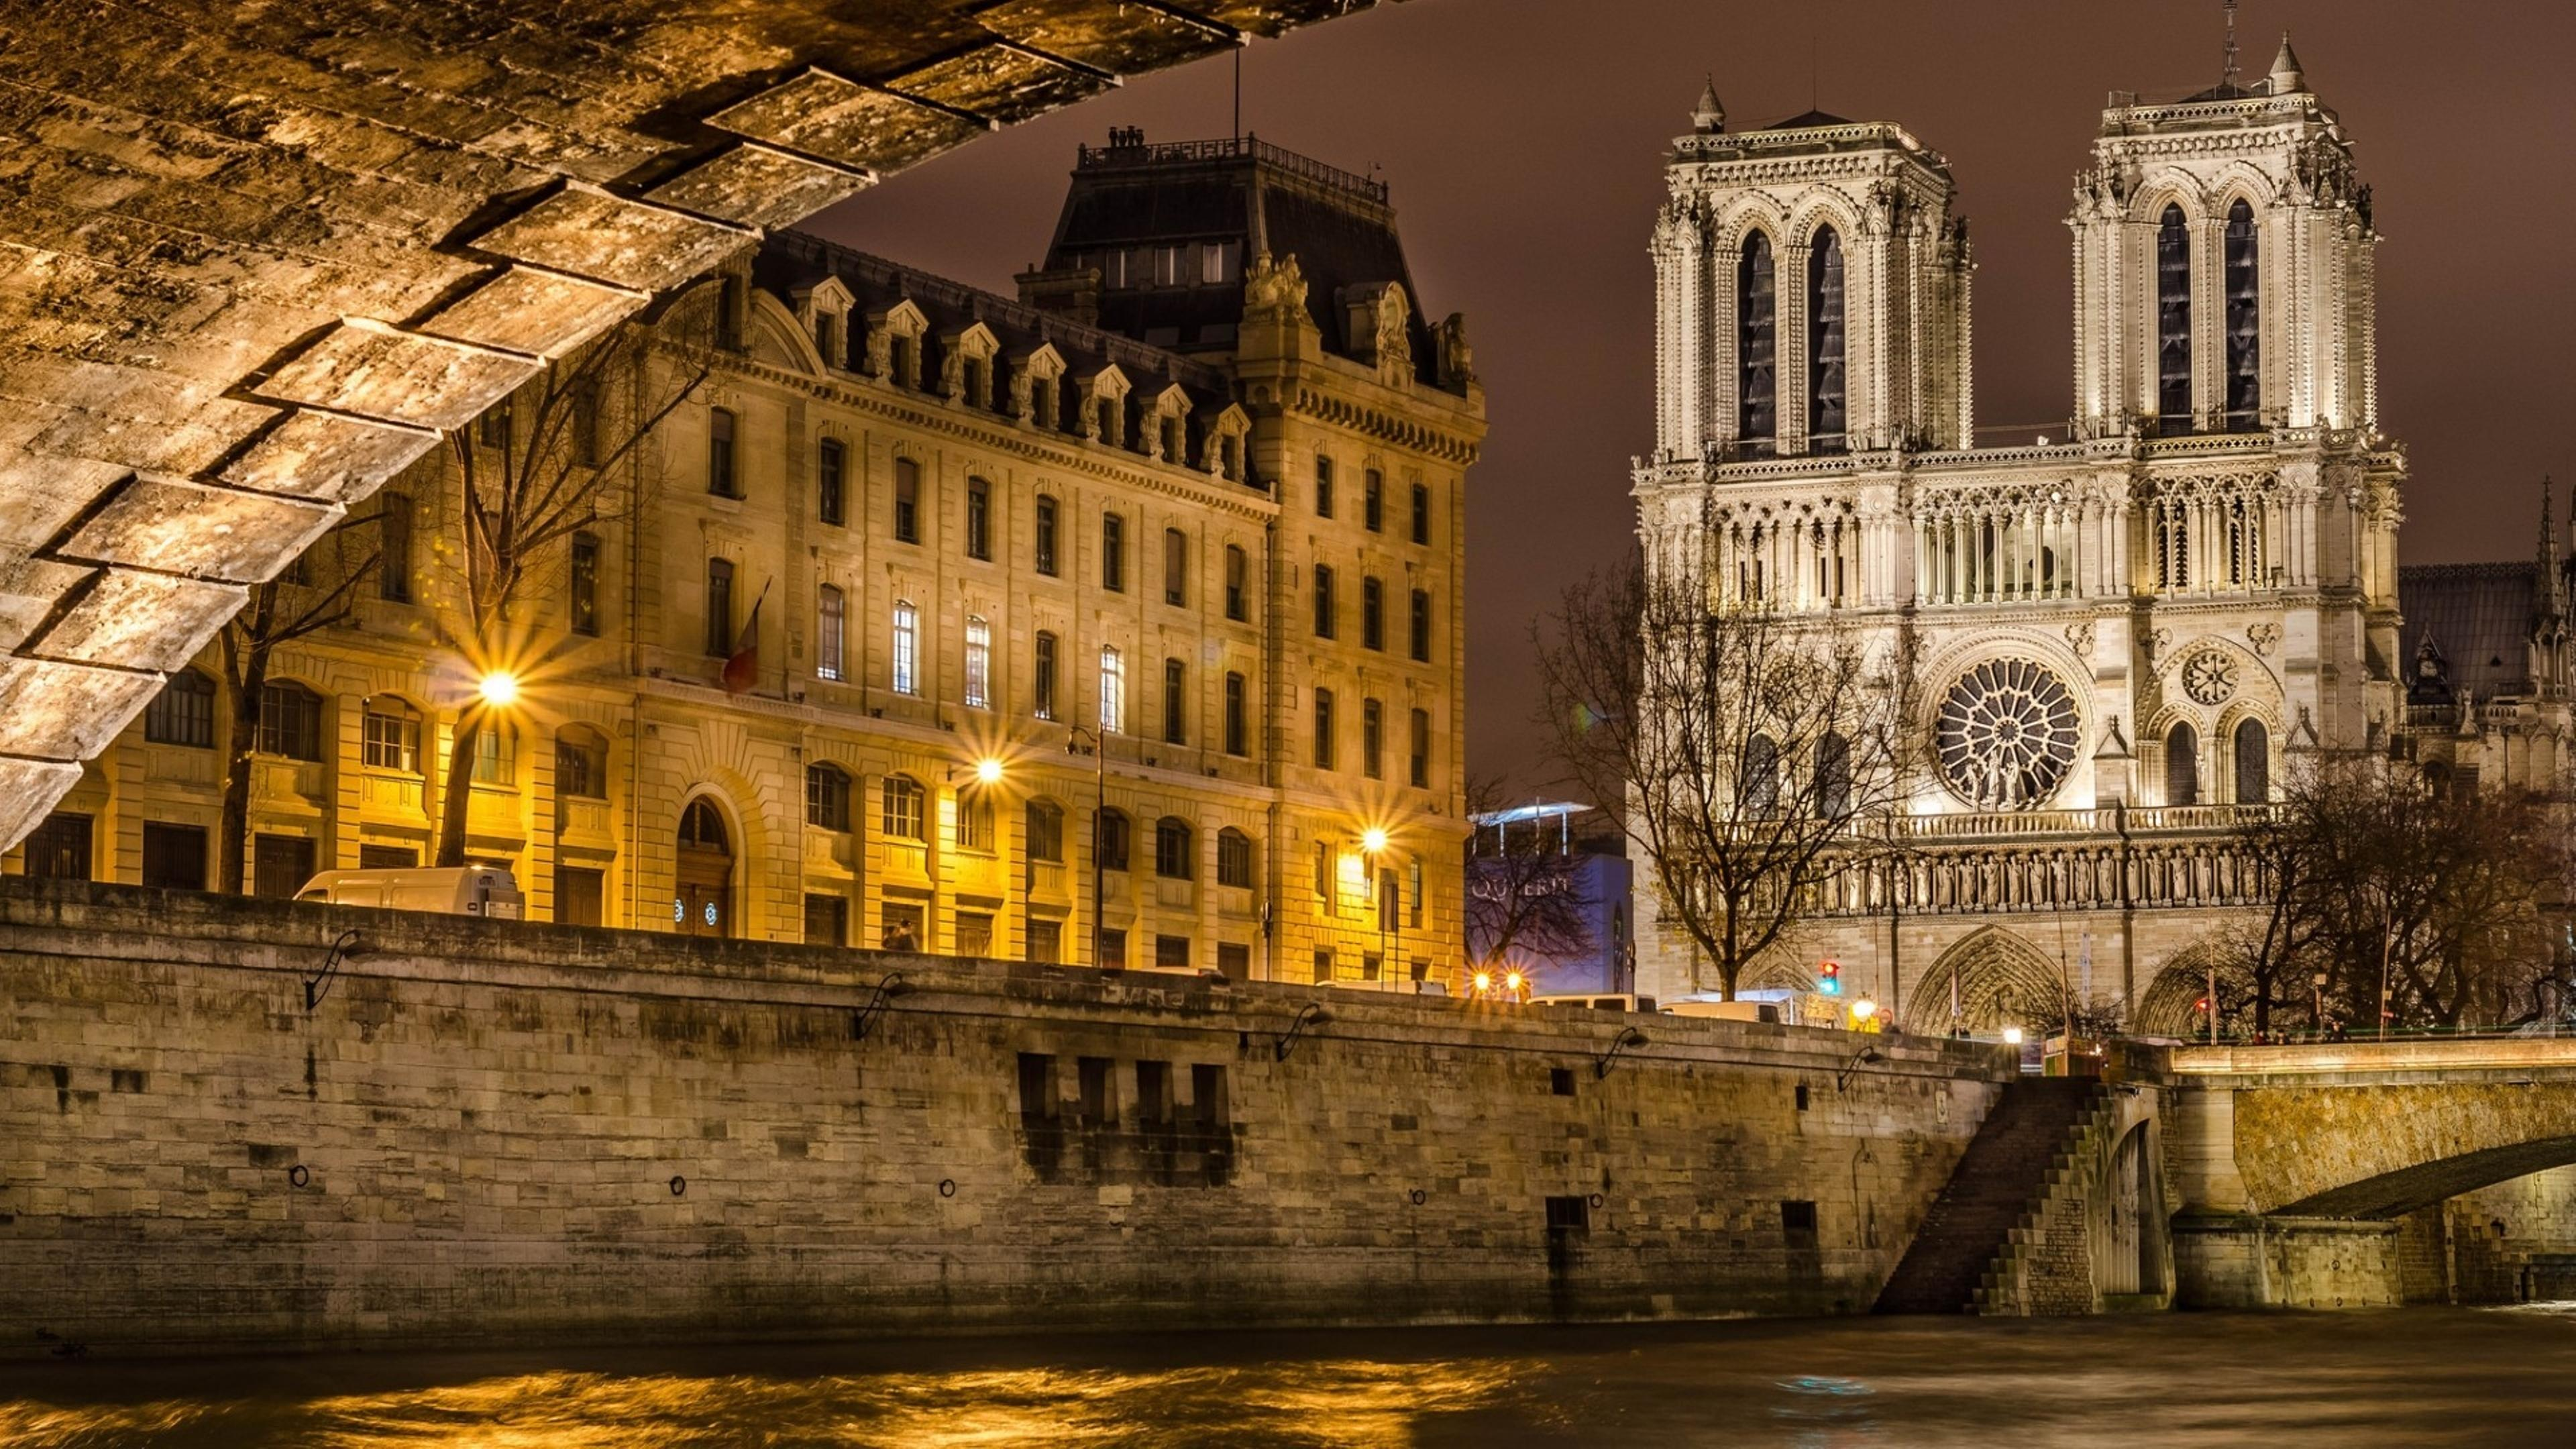 cathedral notre dame from paris, france wallpaper download 3840x2160